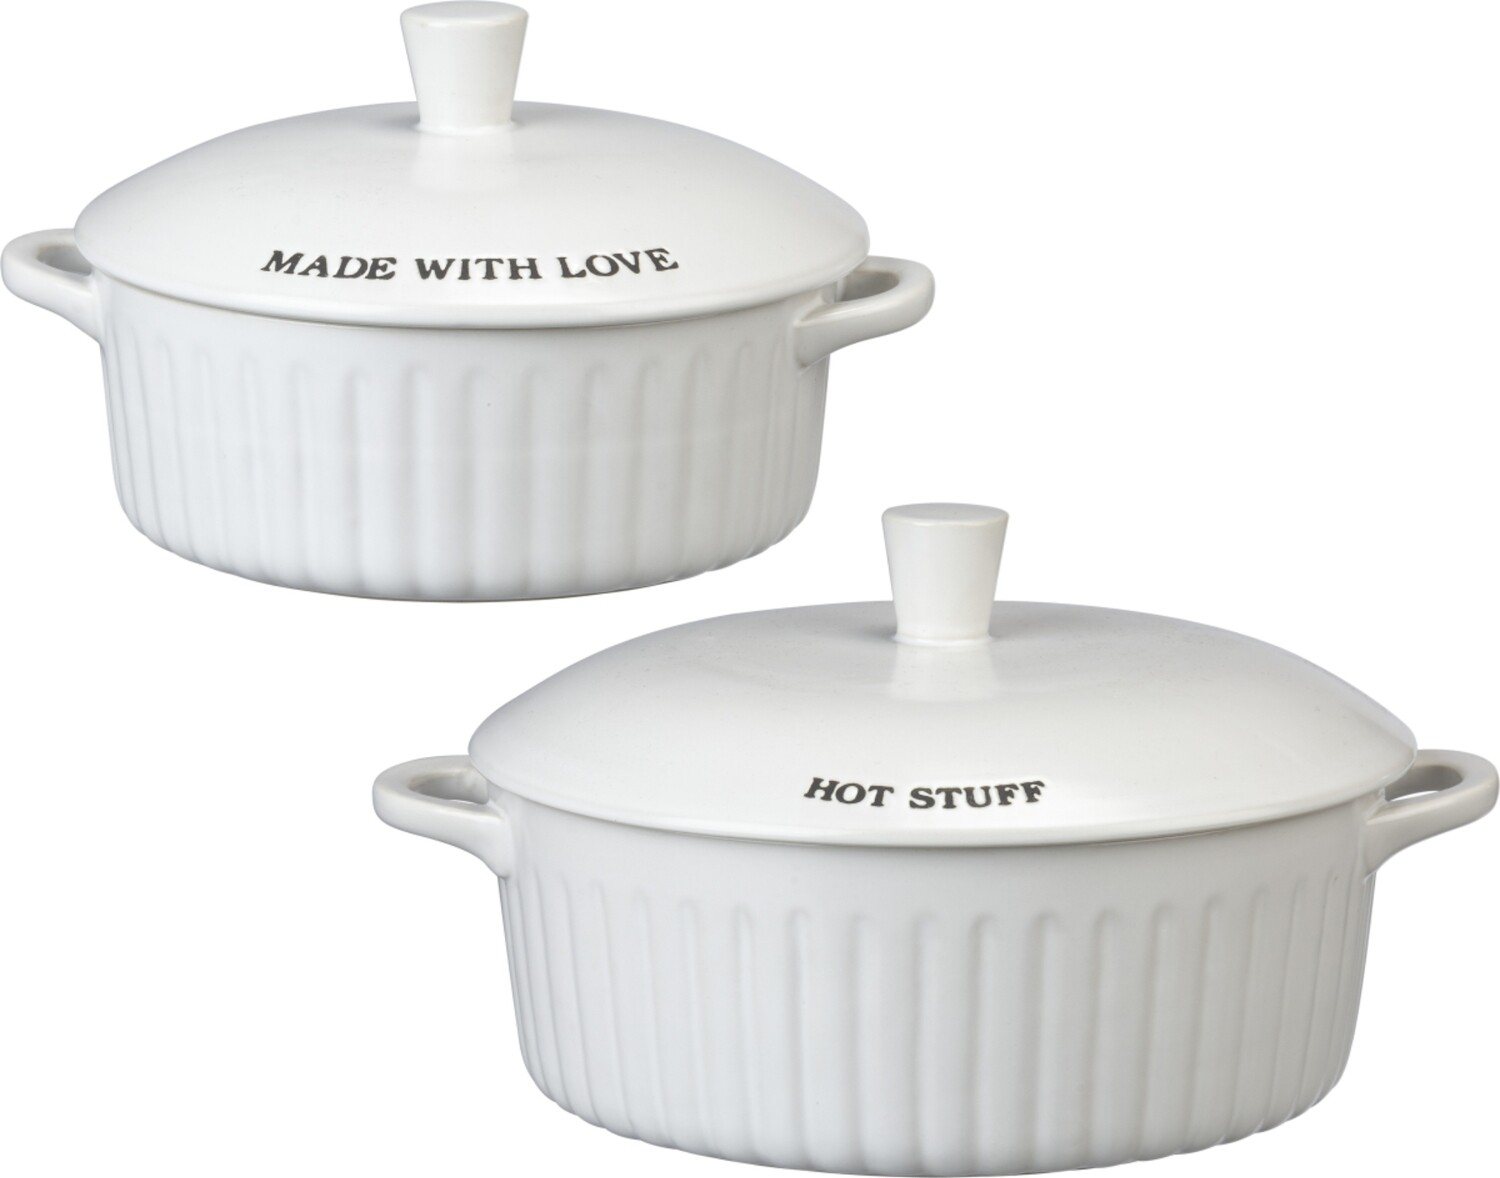 Covered Casserole Set